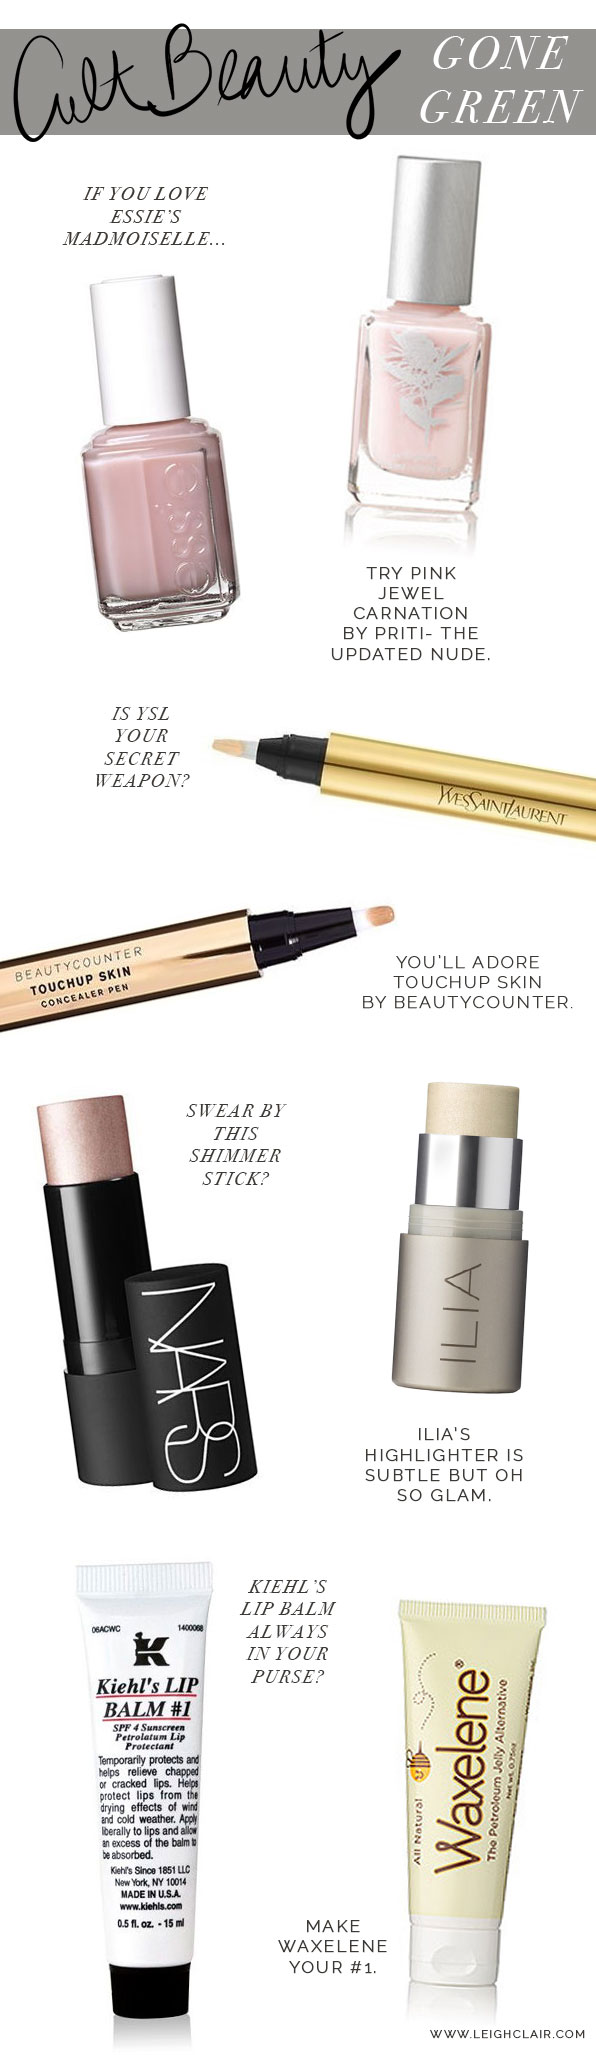 easy swaps for your cult beauty classics